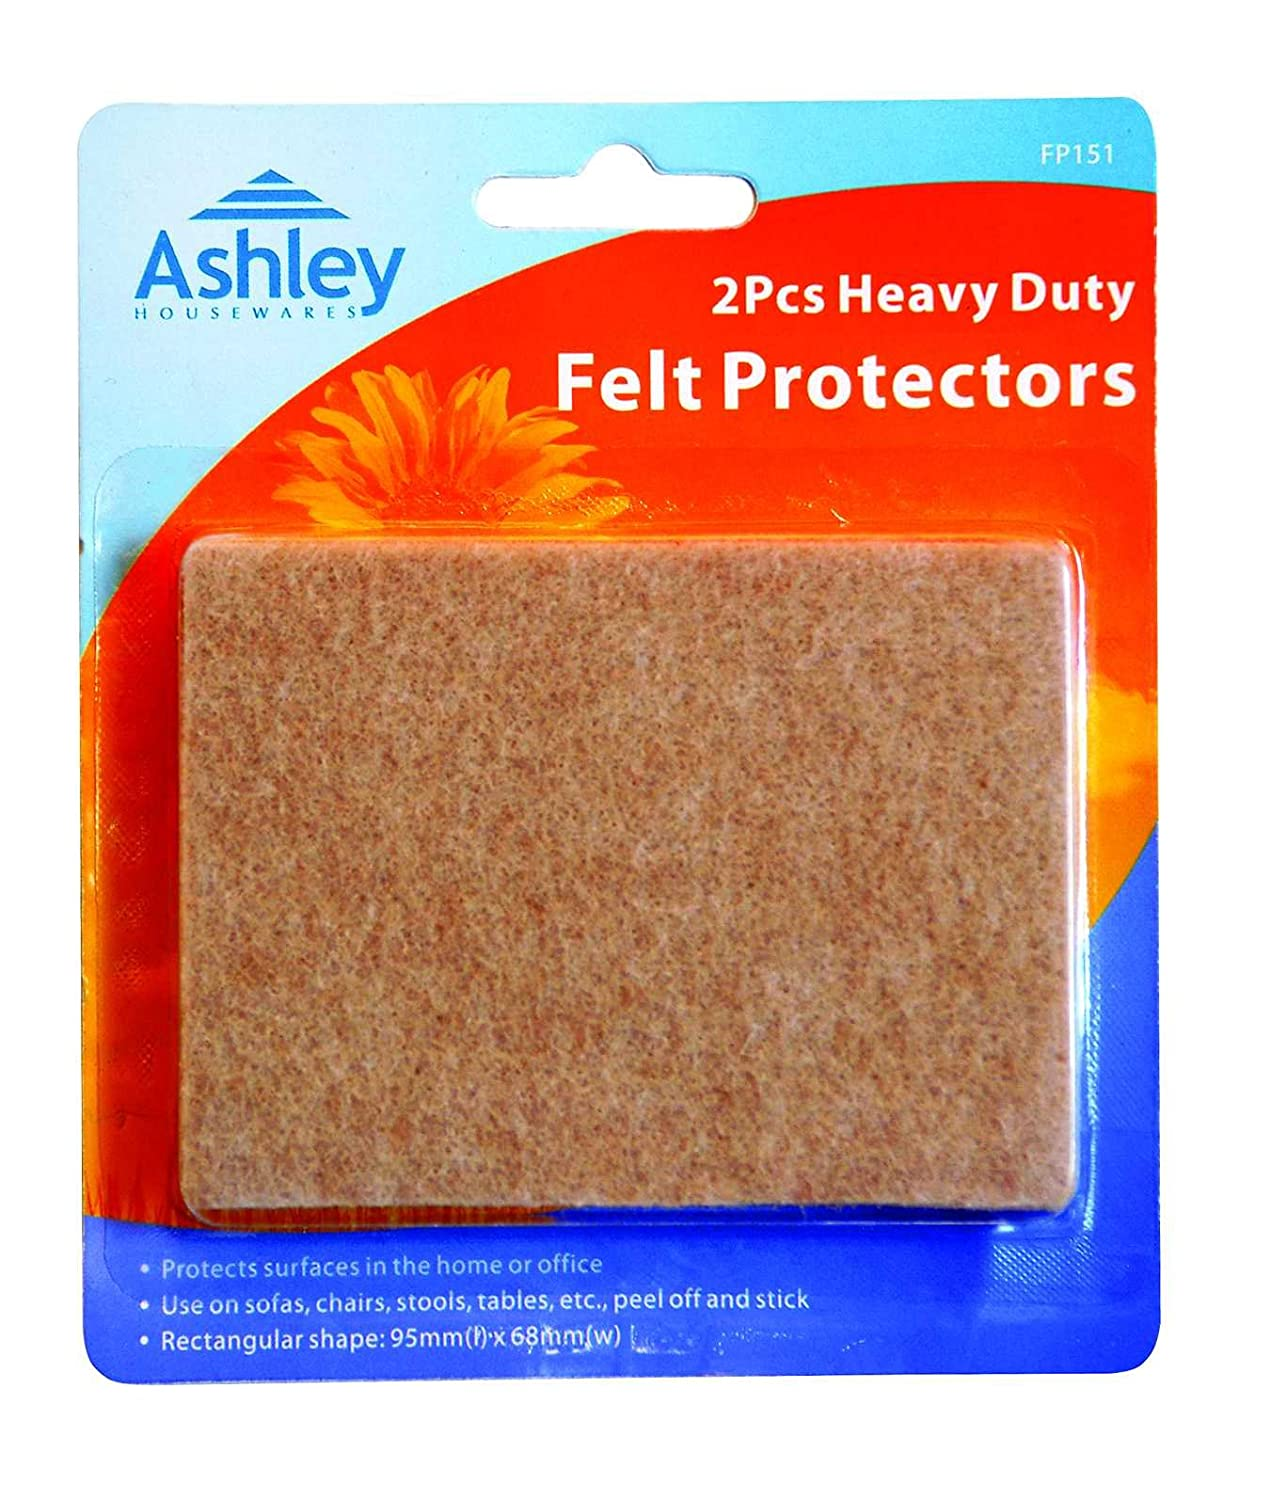 2 Pack Heavy Duty Felt Protectors For use on Sofas, Chairs, Stools, Tables, etc. 95 mm x 68 mm Not Known